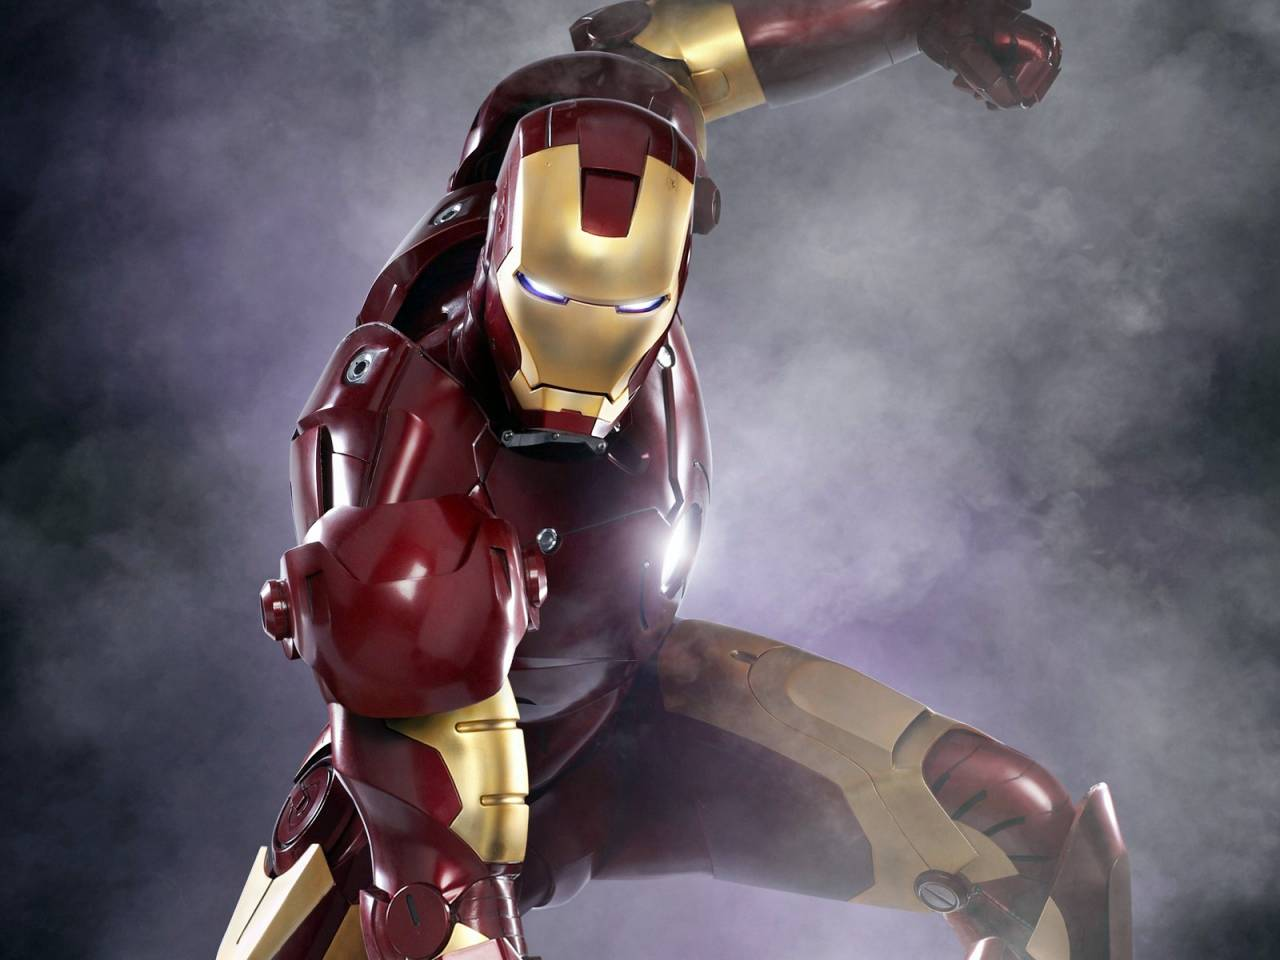 Iron Man 3 Action HD Wallpaper - HD Wallpaper Collection - HD ...